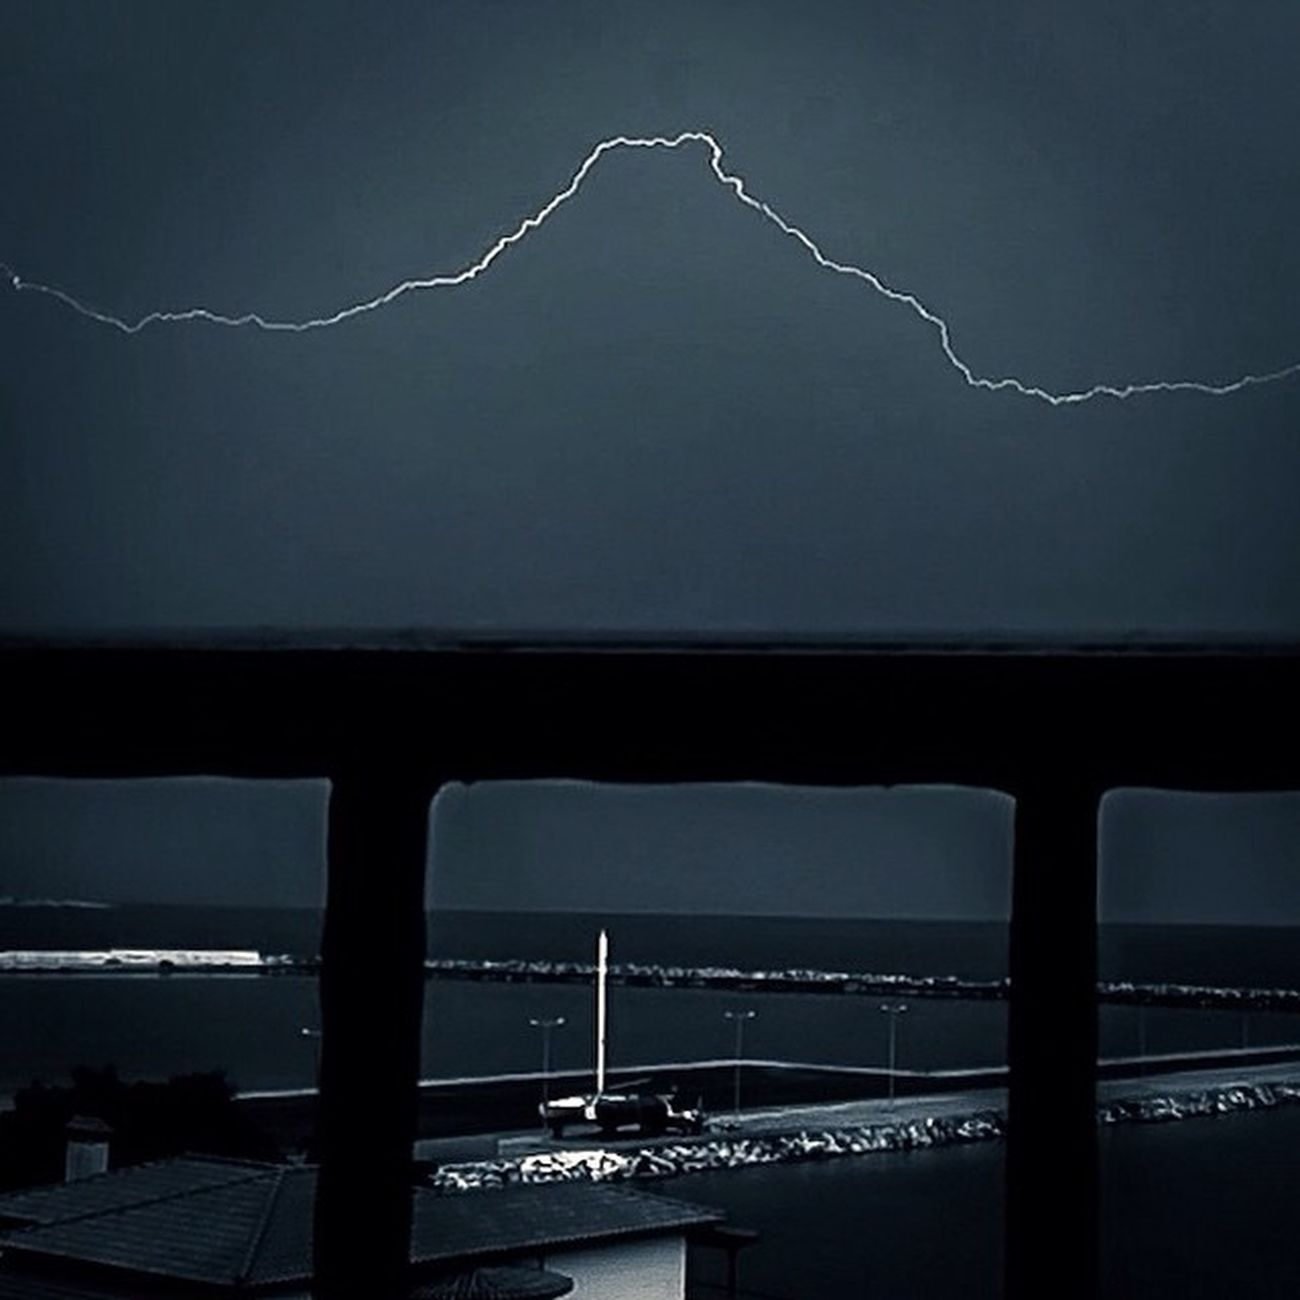 Really enjoying Camera+ manual camera controls. Lightning captured in Kimi , Greece . Greetings to @jackhollingsworth. Grupamobilni Mobilnytydzien Mobilnytydzien5 Igersgreece